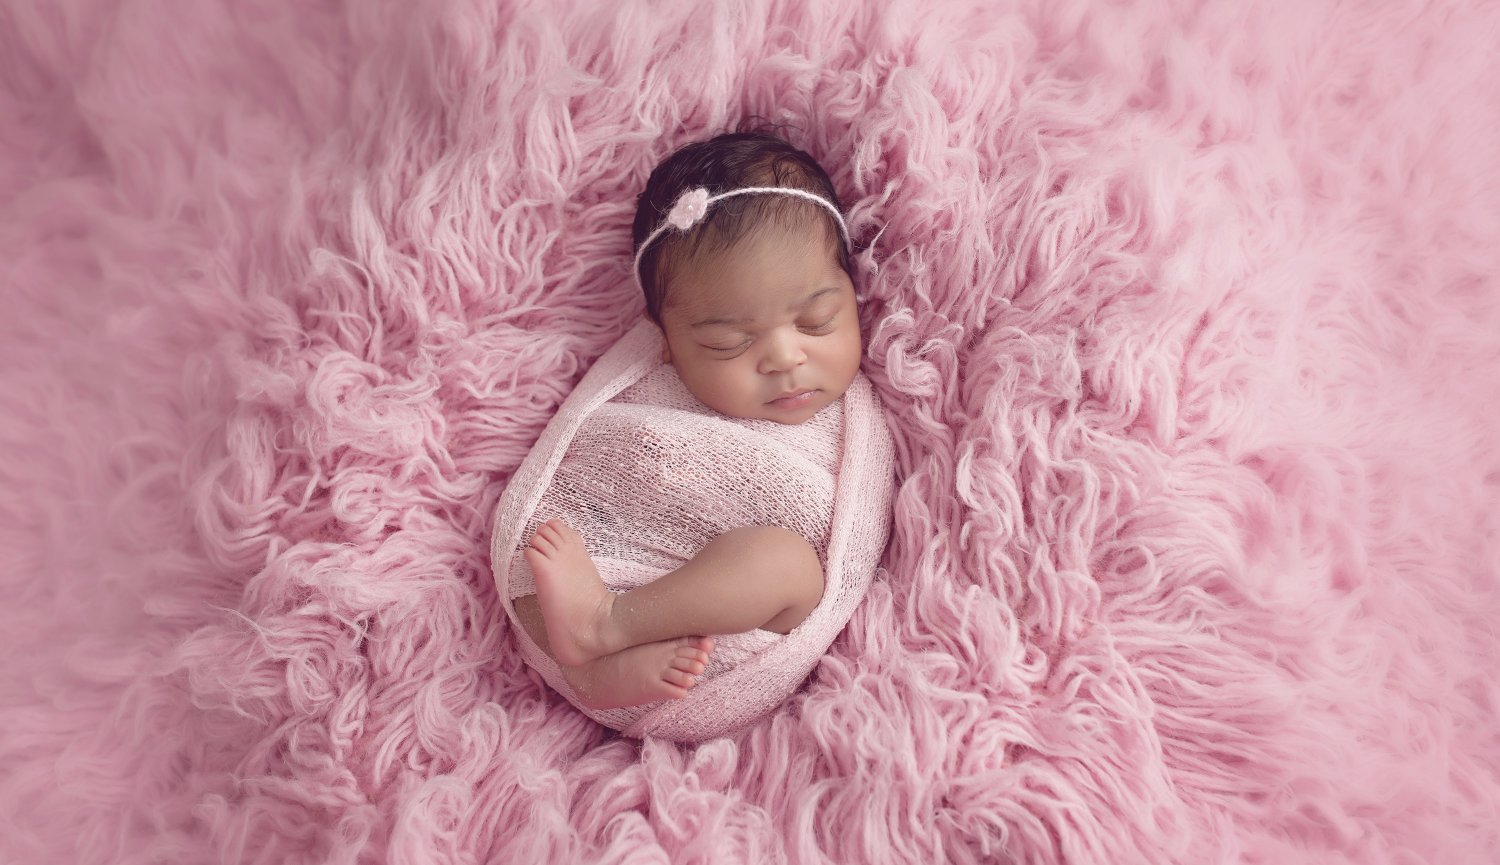 673ad523015f Ranked   1 - Best Newborn Photographer in Los Angeles